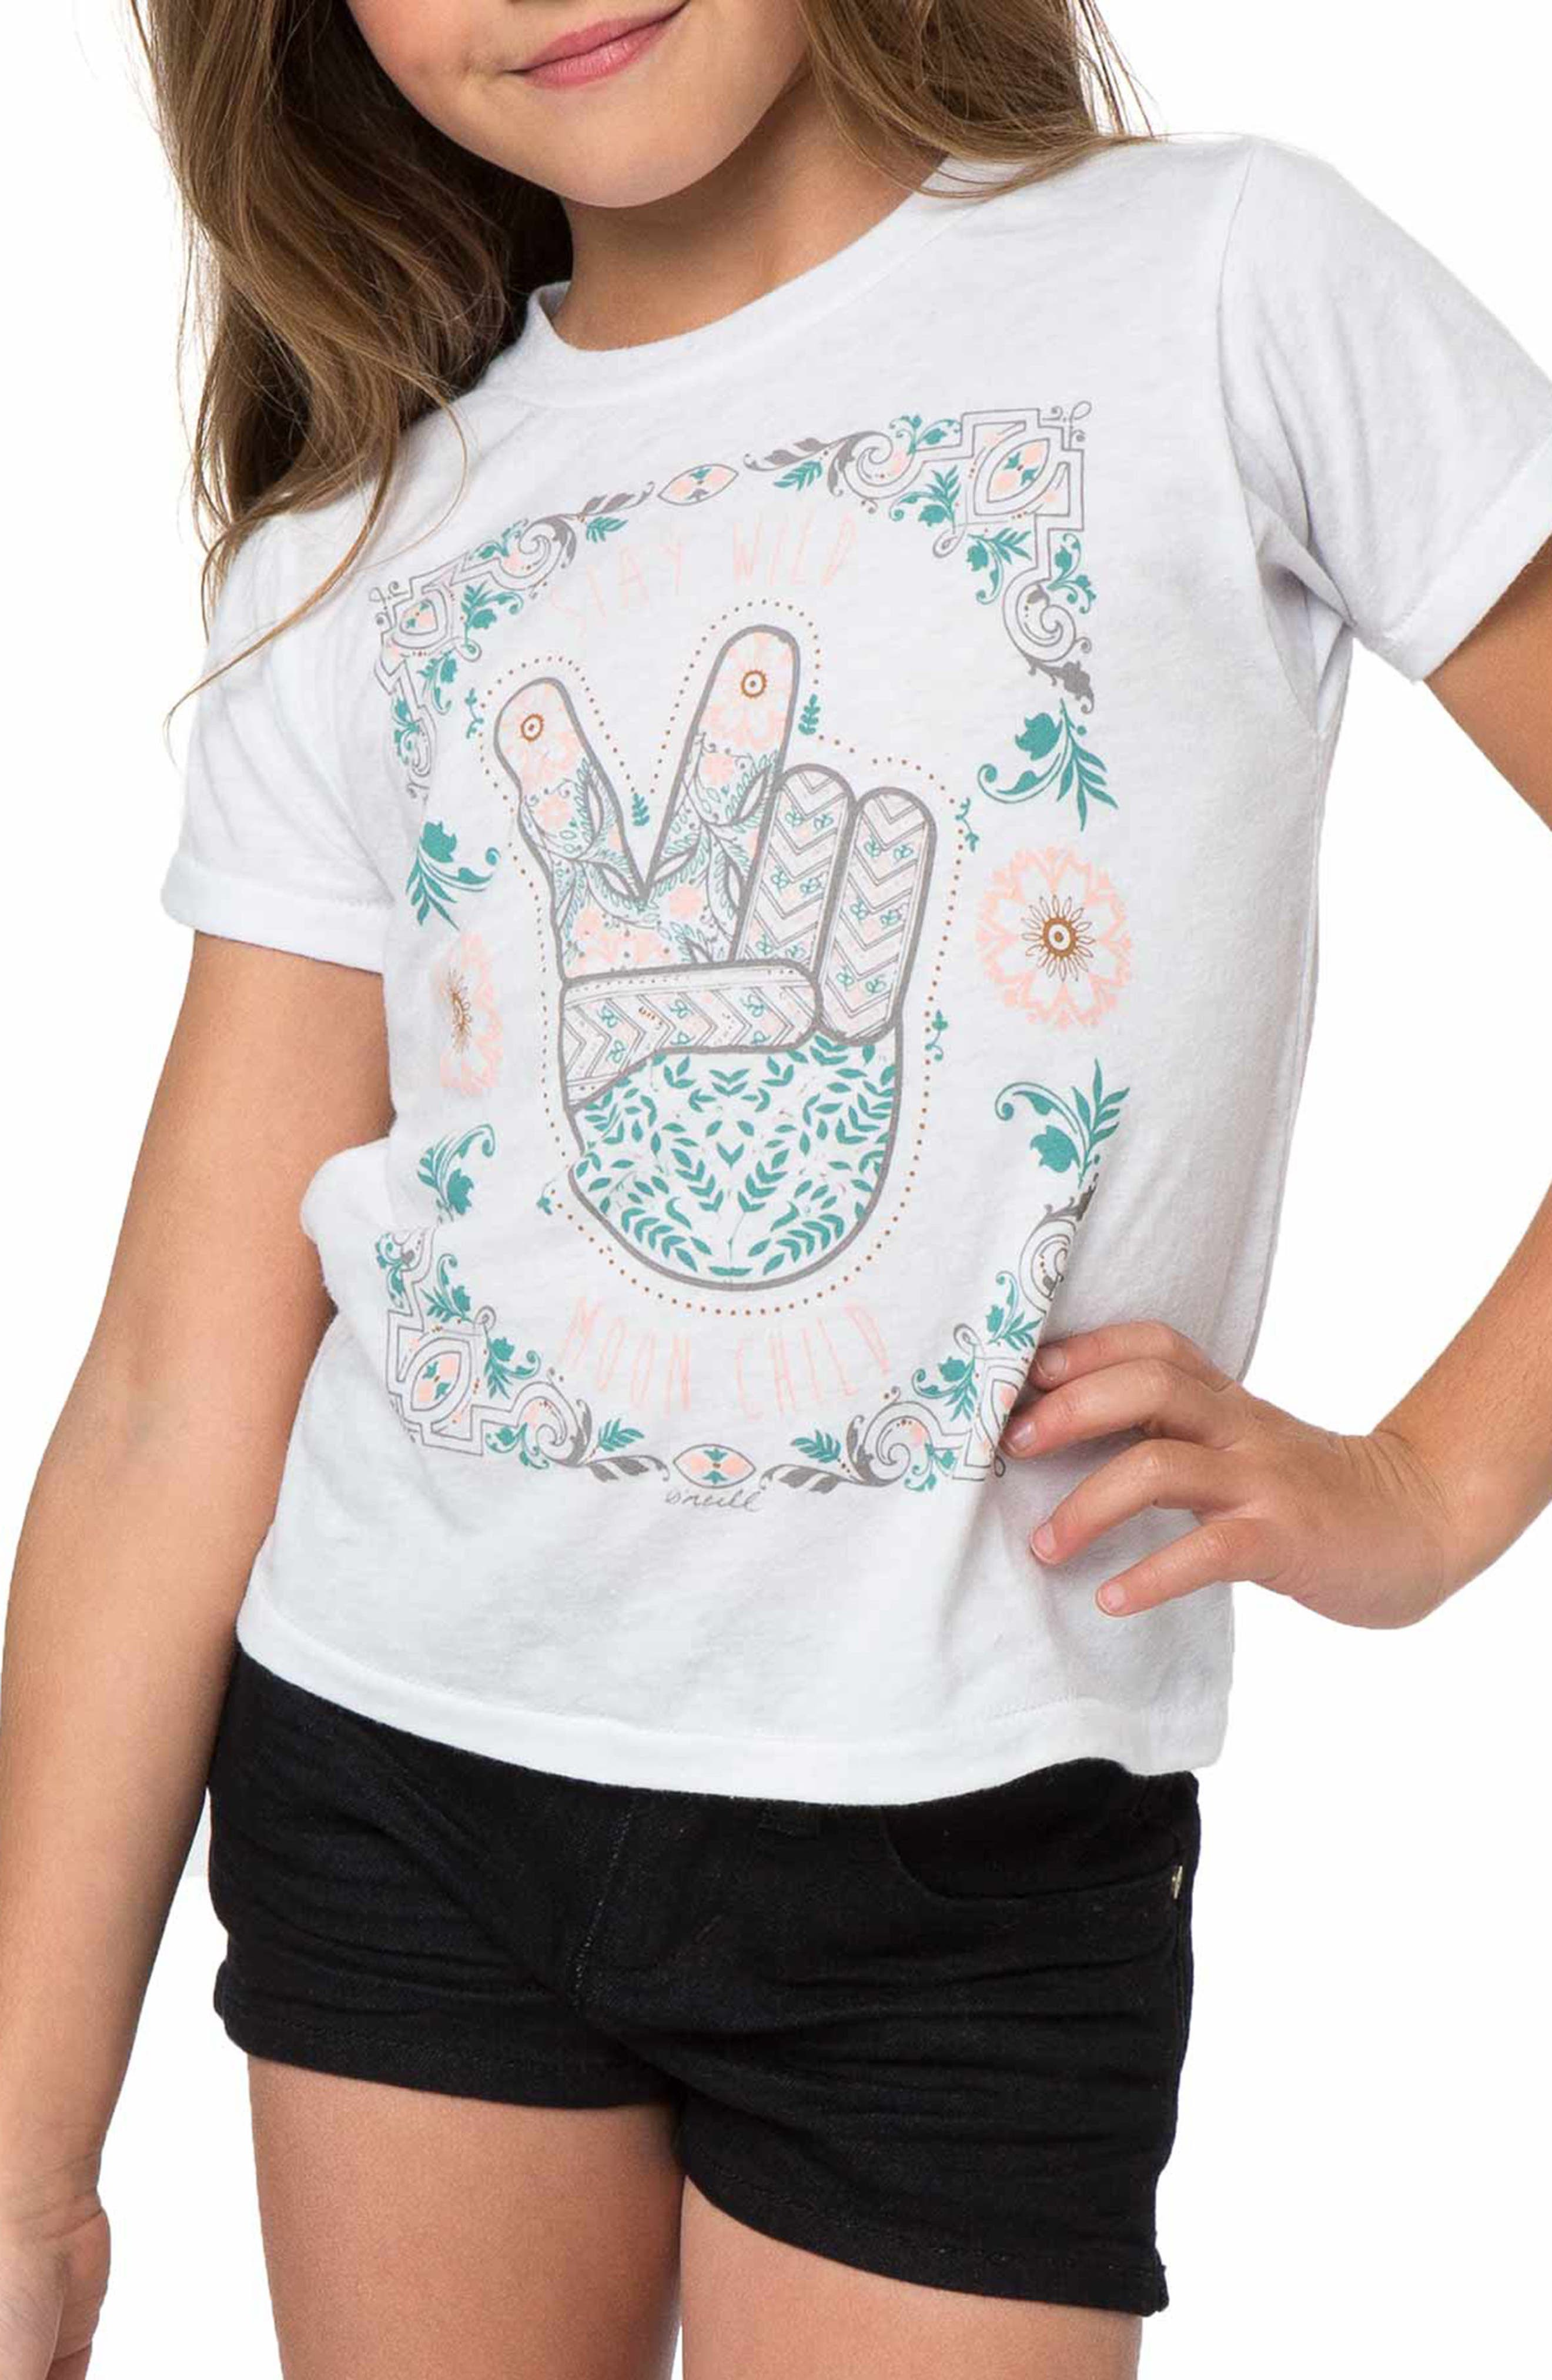 Stay Wild Moon Child Graphic Print Tee,                         Main,                         color, 100